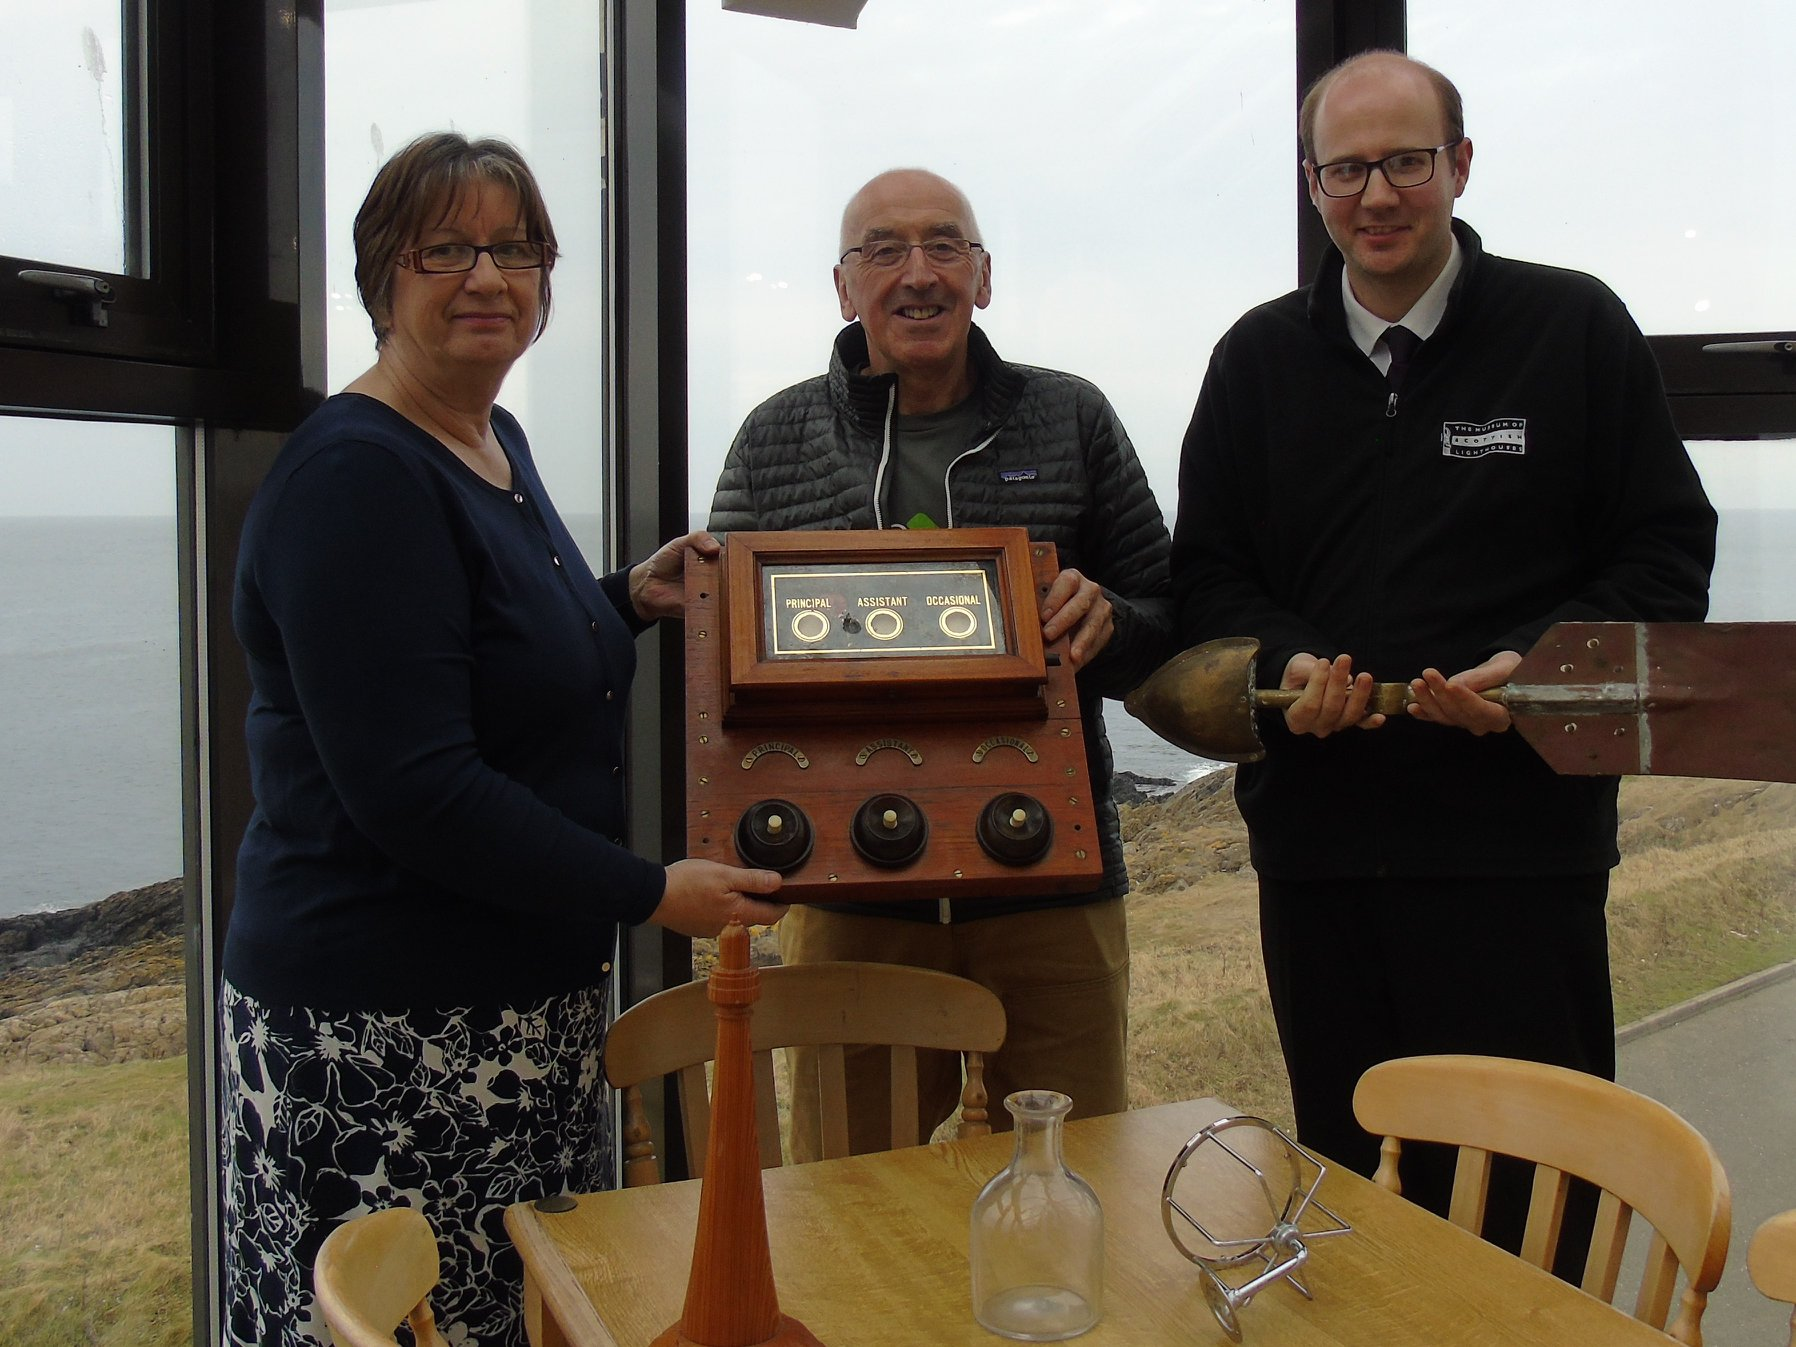 L-R: museum manager Lynda McGuigan, Calum Falconer and collections manager Michael Strachan.